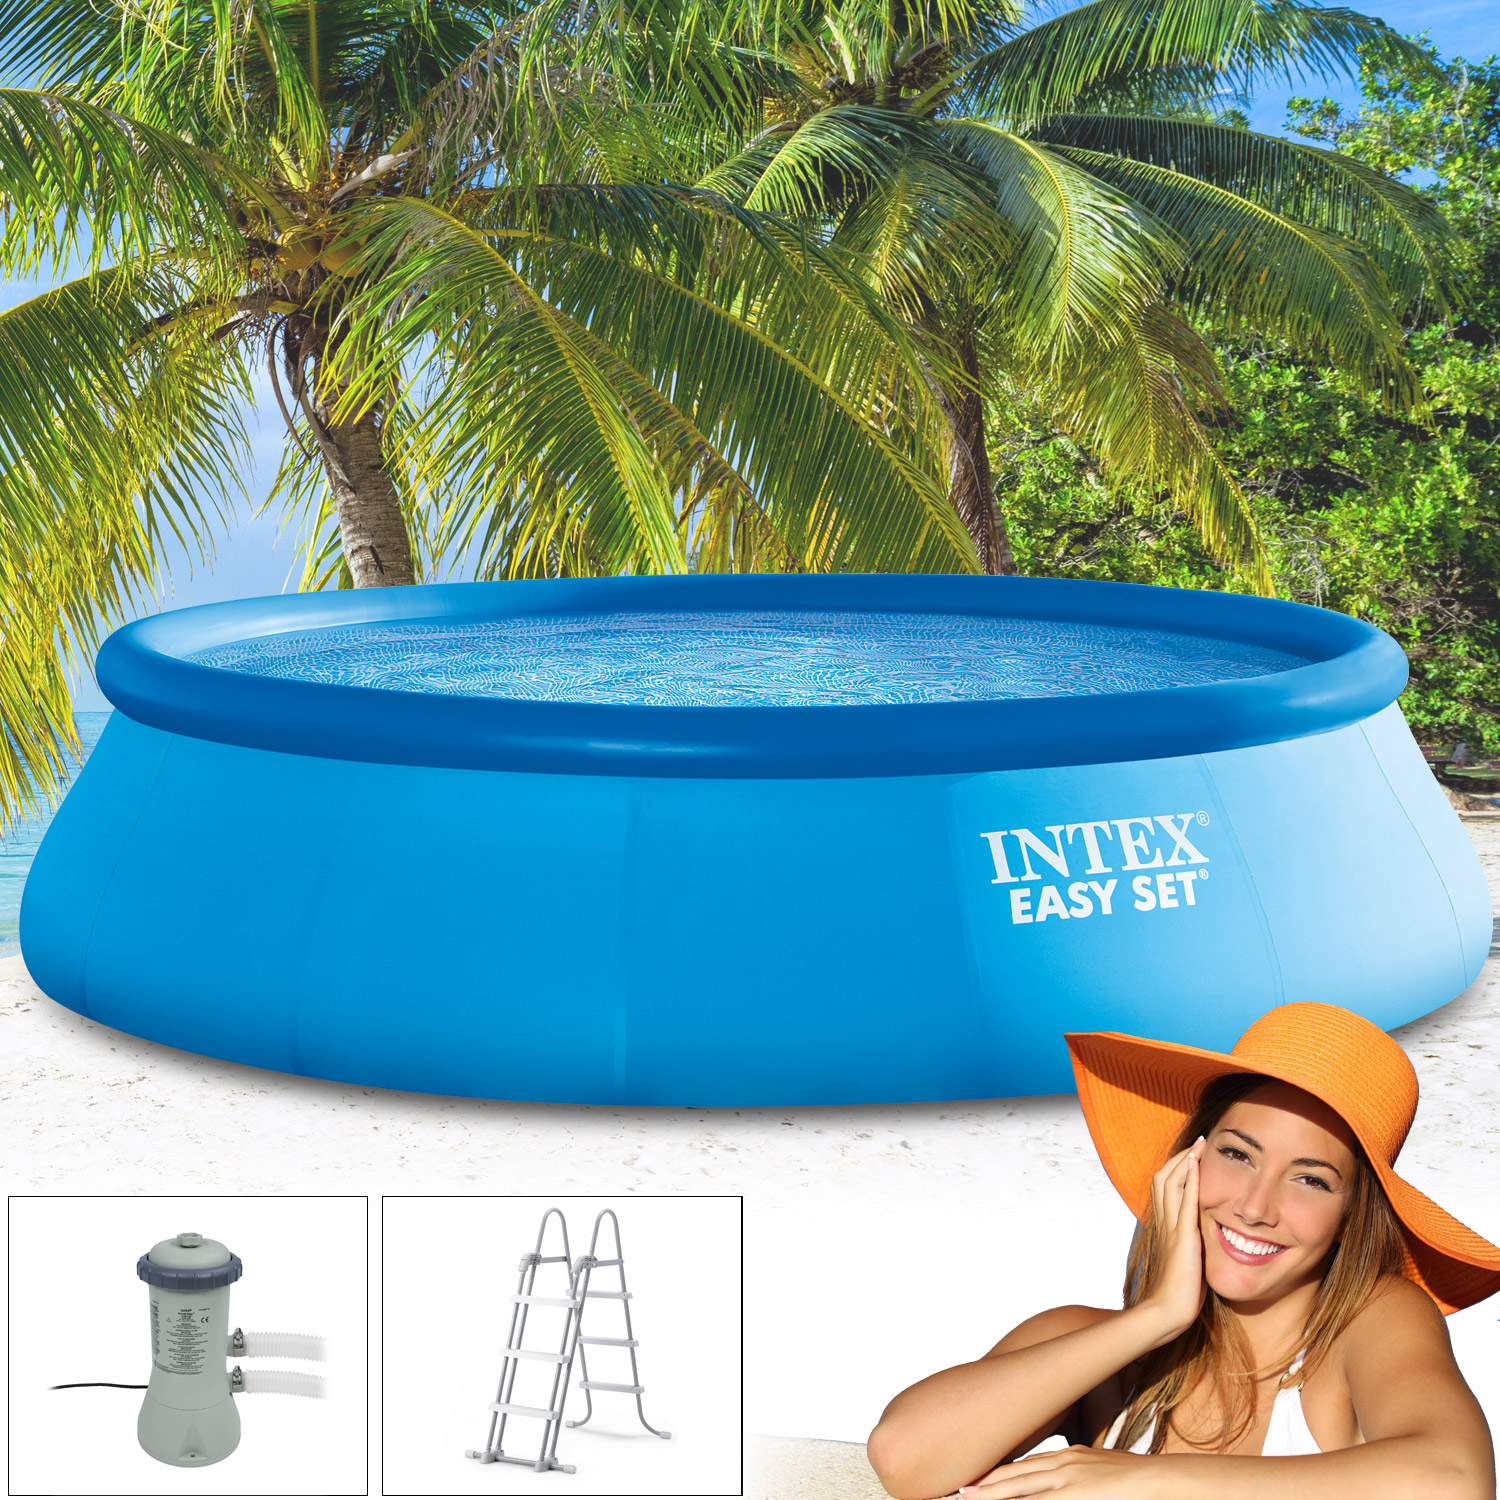 Intex 366x91 cm easy set bestehend aus pool filterpumpe for Angebote pool set